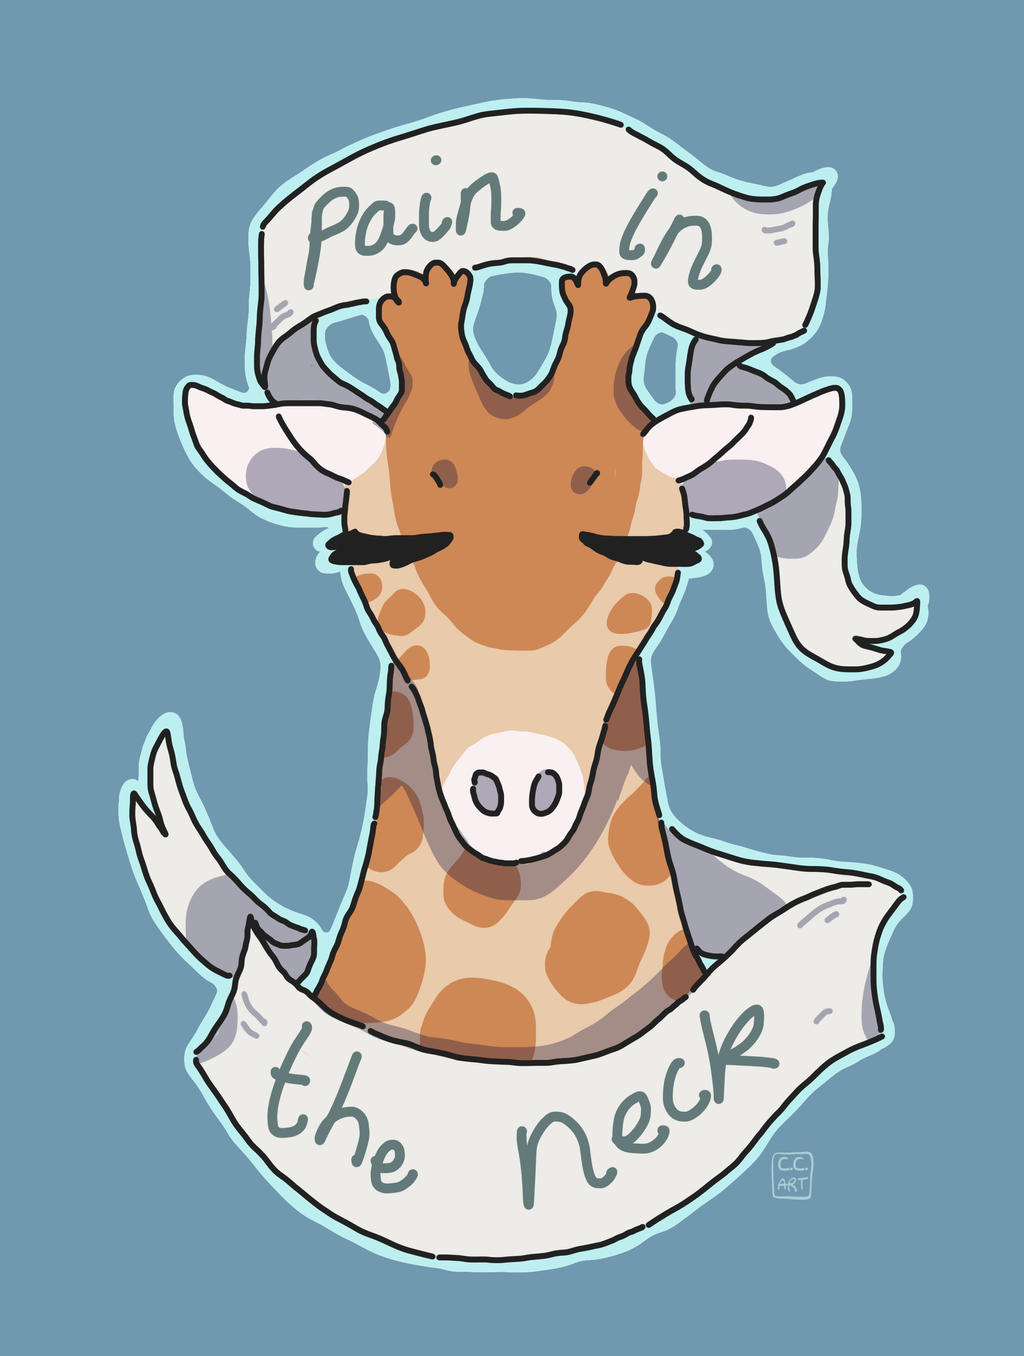 neck pain by ccartstuff